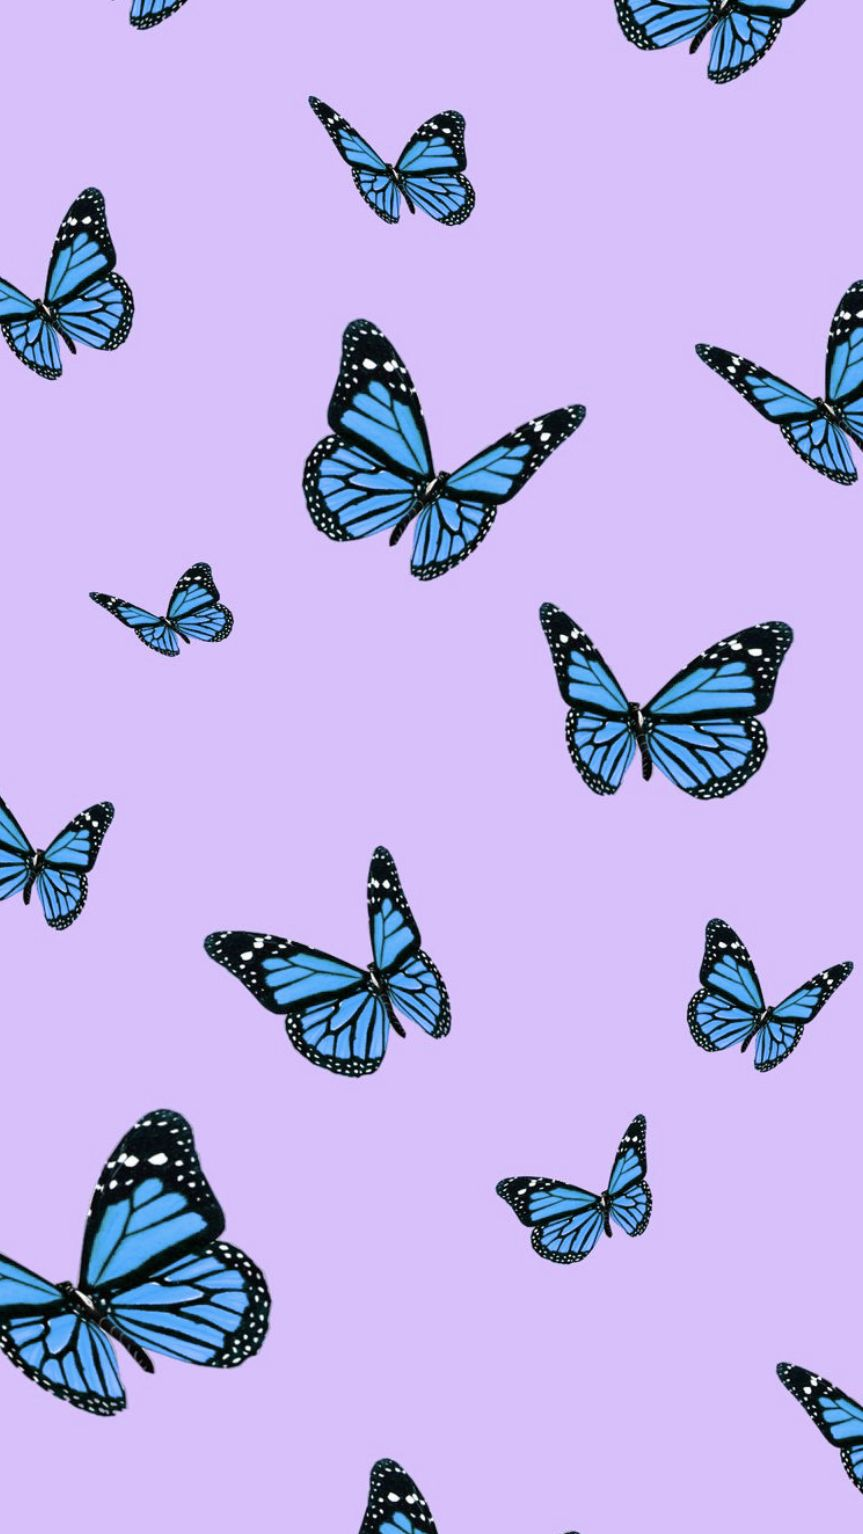 Pin By Aracely Huaman On A E S T H E T I C S In 2020 Butterfly Wallpaper Iphone Iphone Wallpaper Pattern Iphone Wallpaper Tumblr Aesthetic